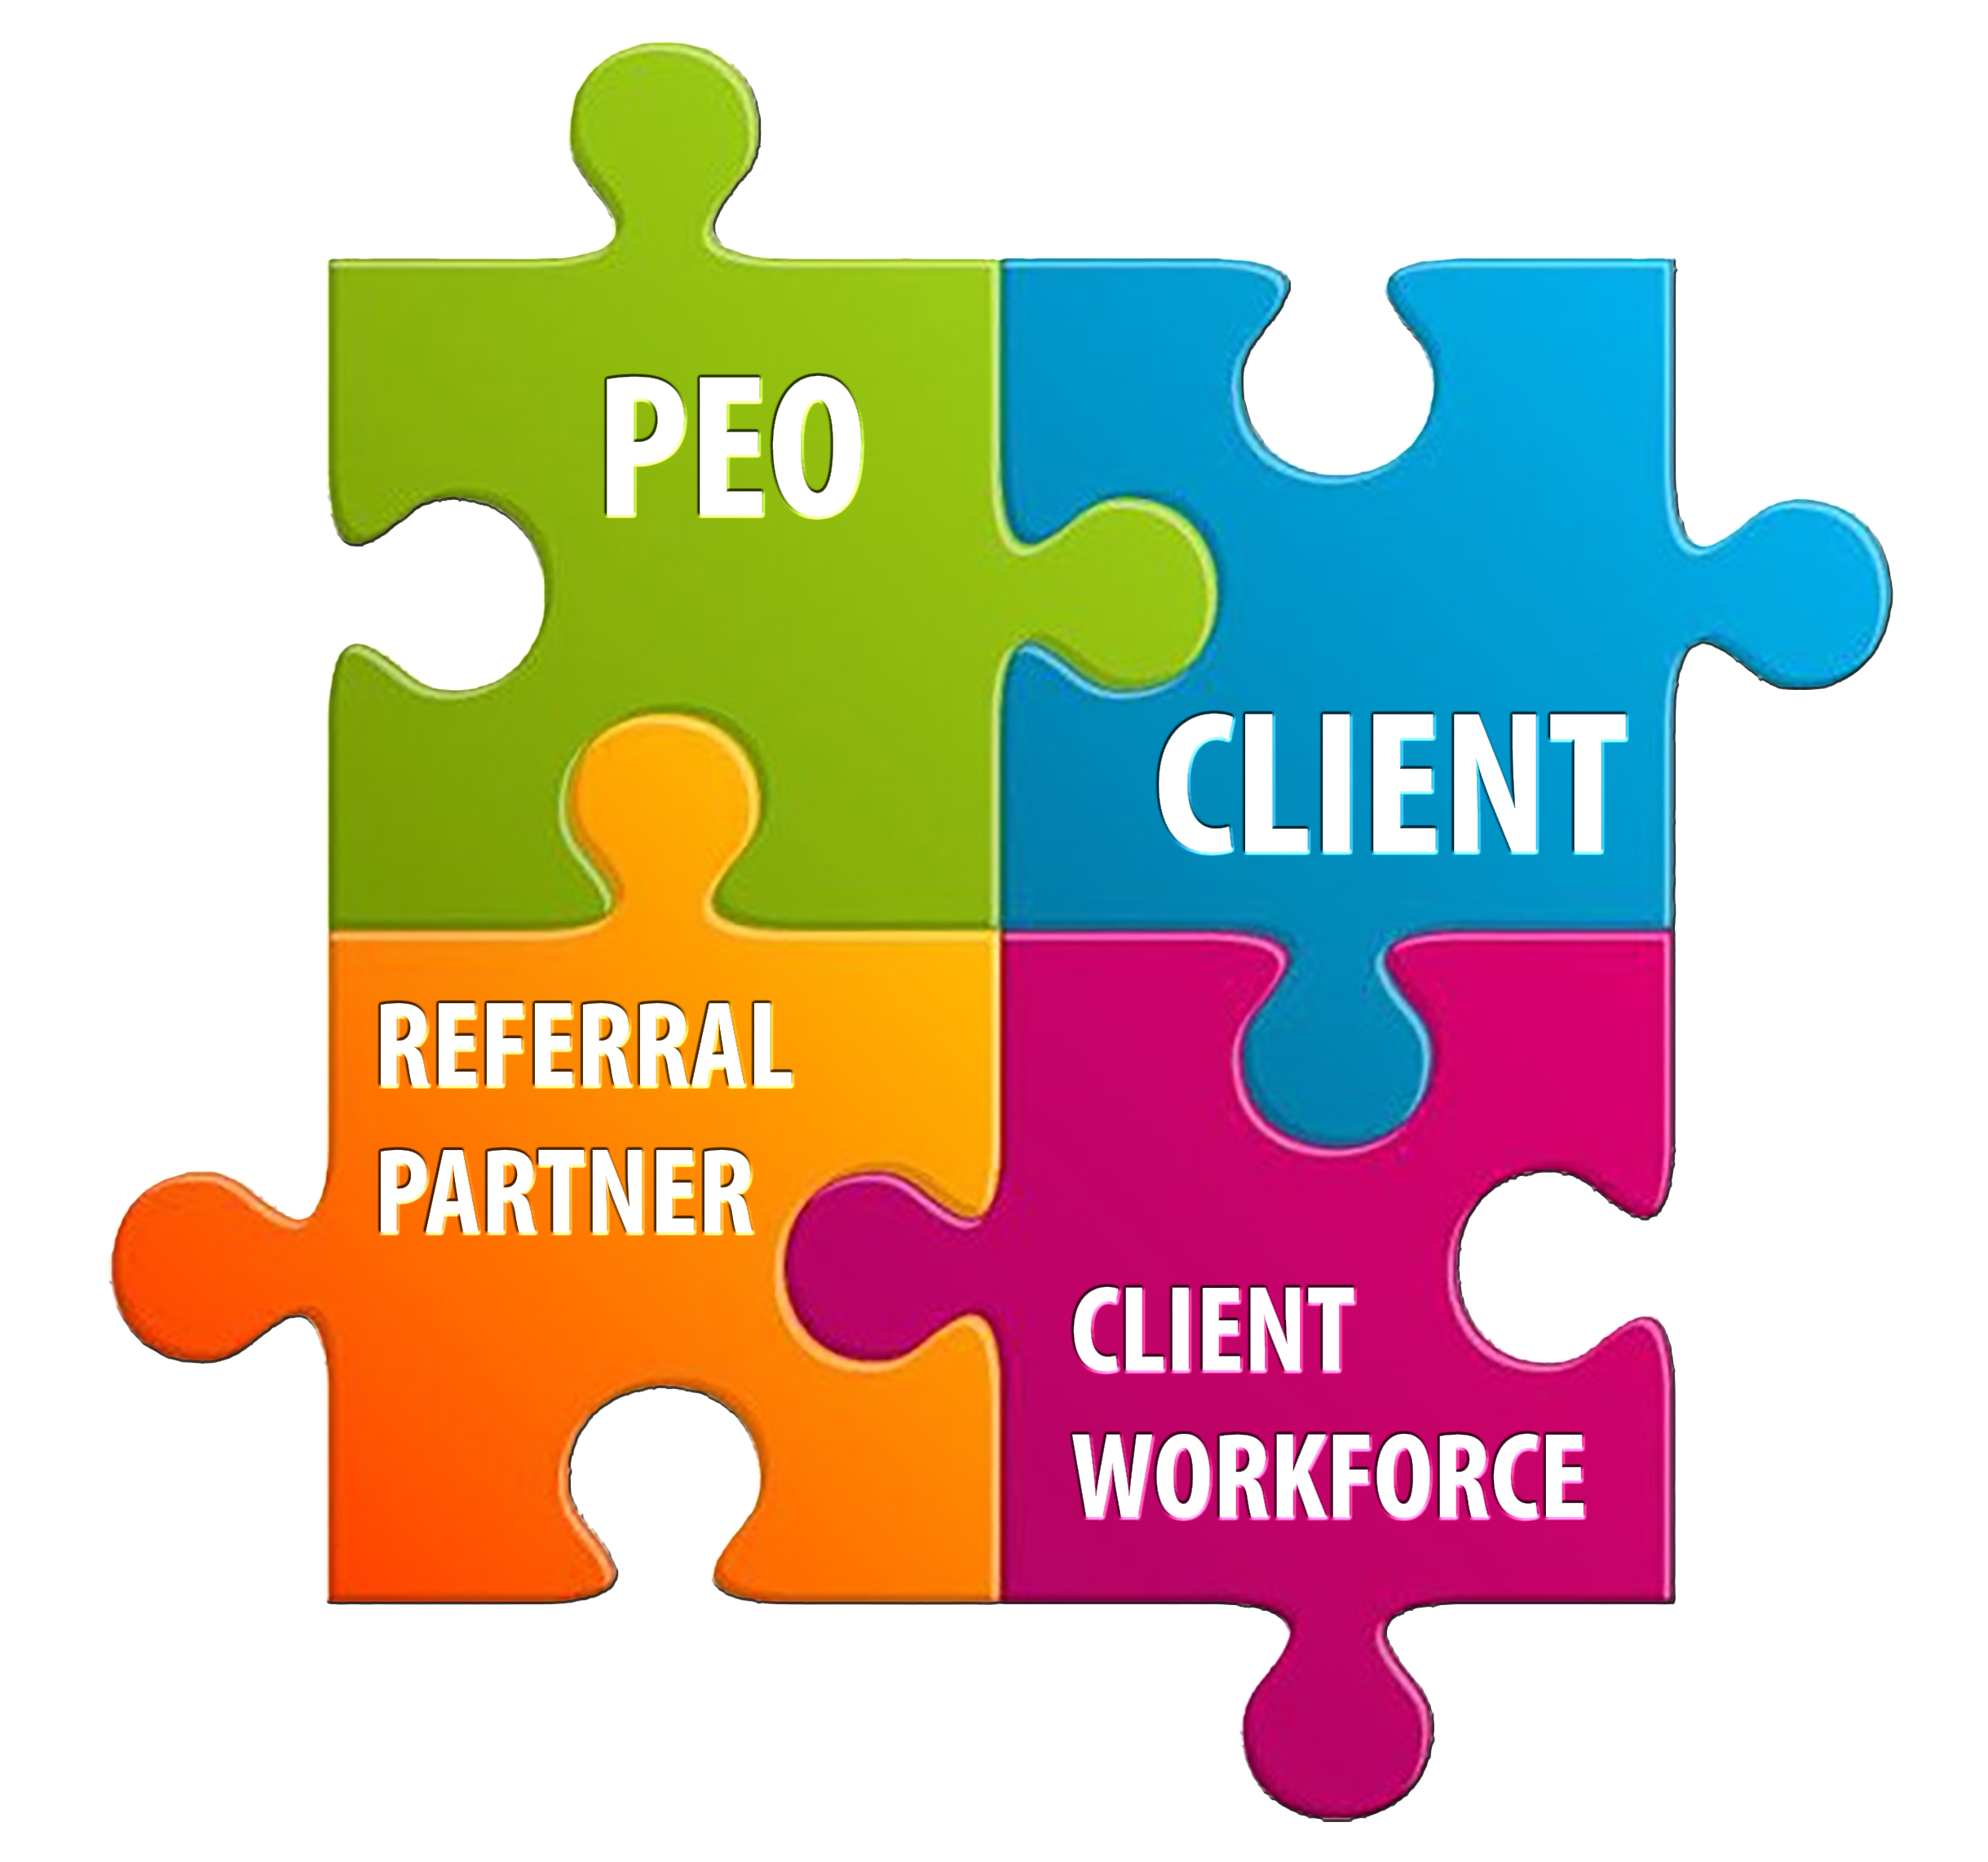 A PEO model is heavily reliant upon symbiosis and the ability for all 4 involved parties to enjoy mutual success.